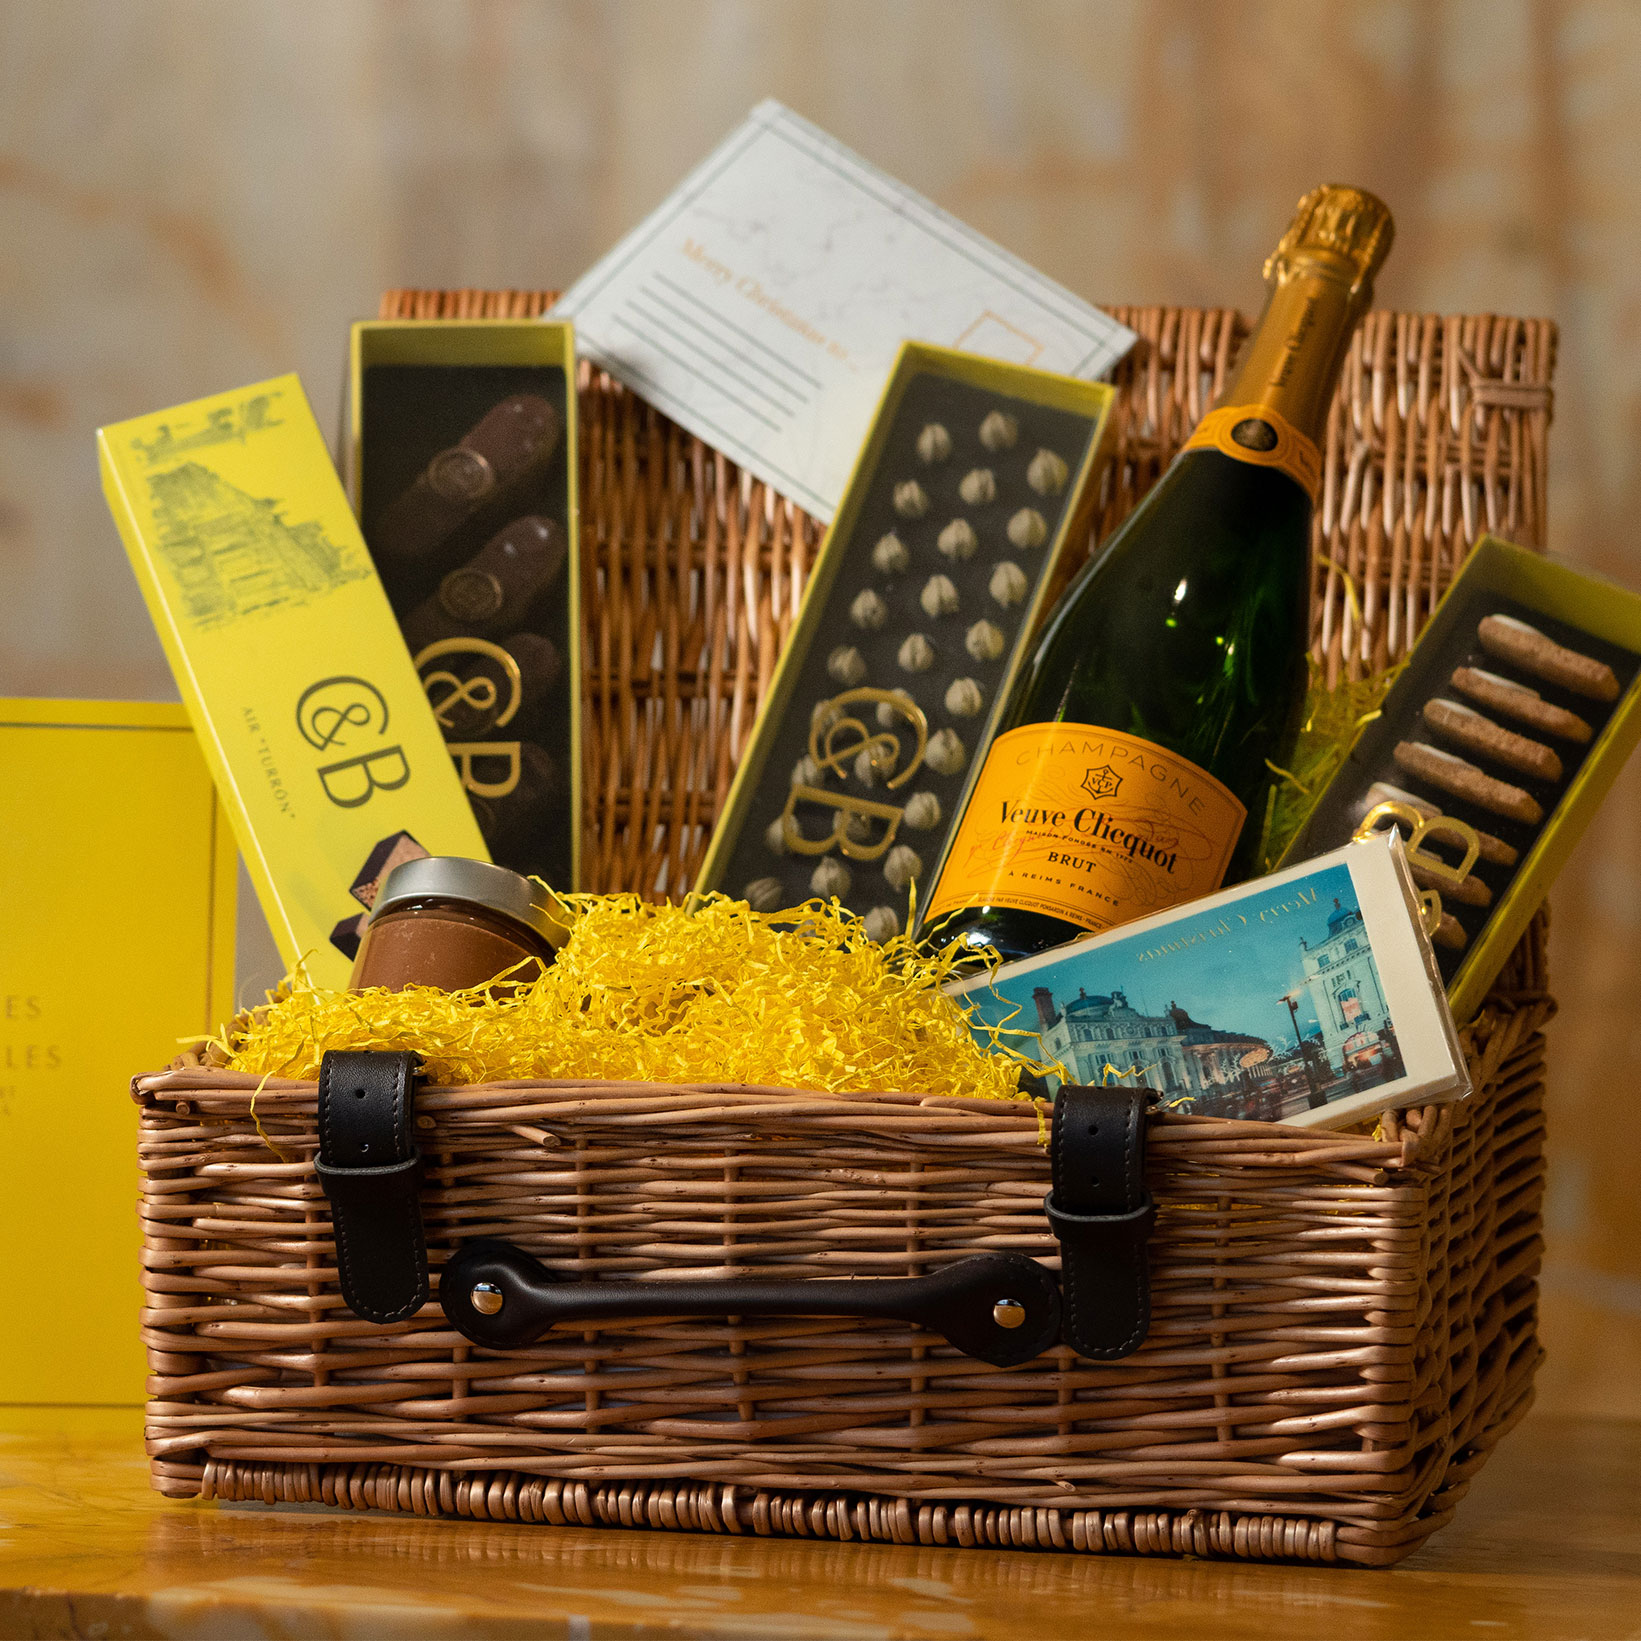 The-Royal-Hamper-Cakes-and-Bubbles-Hotel-Cafe-Royal-2019-square